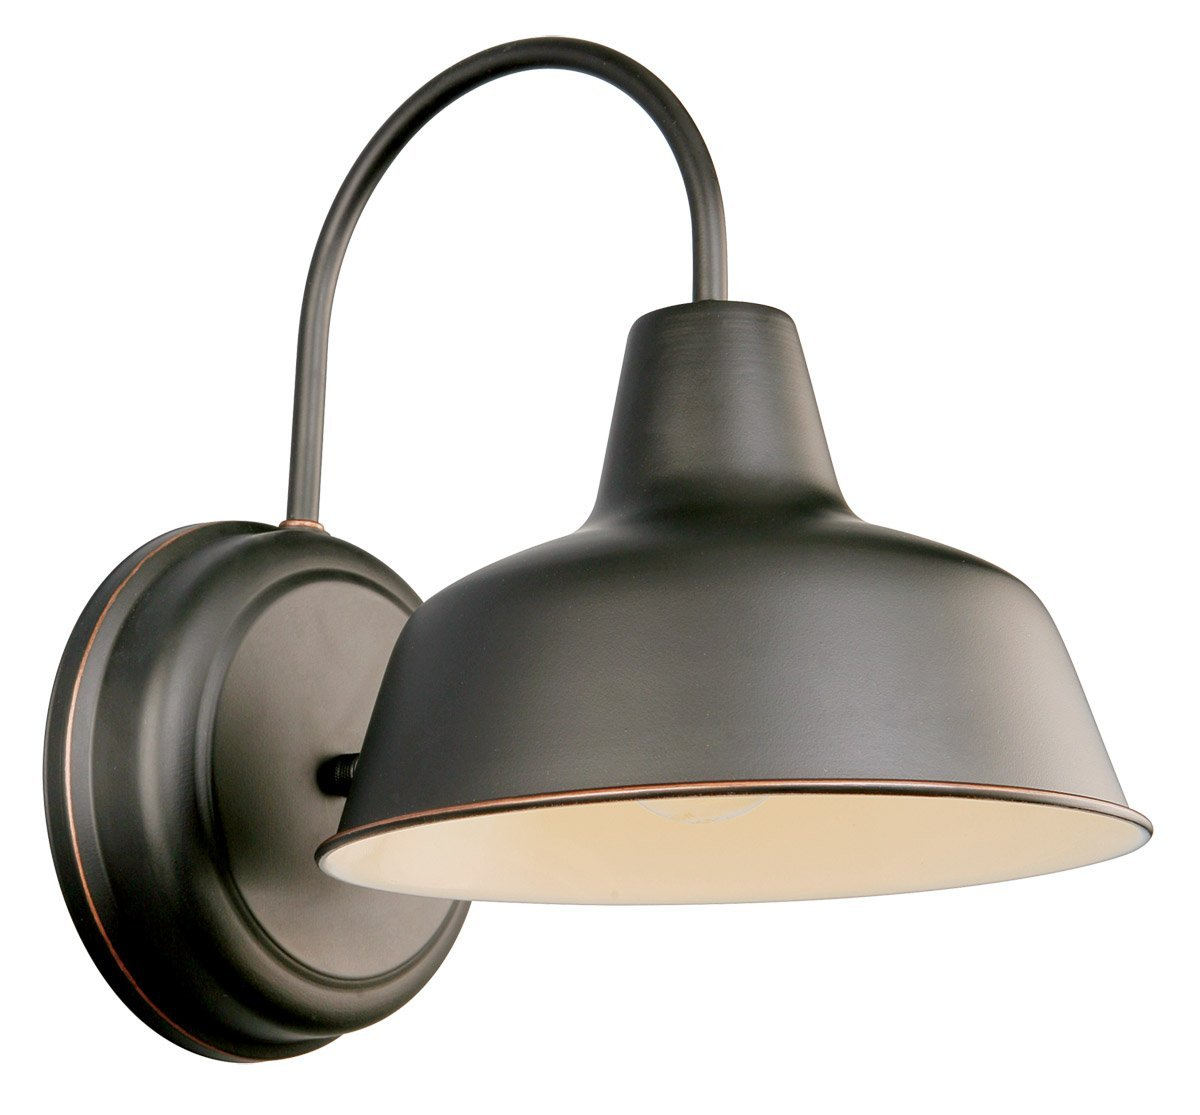 Farmhouse Light Fixtures under 200 on Amazon  Southern Made